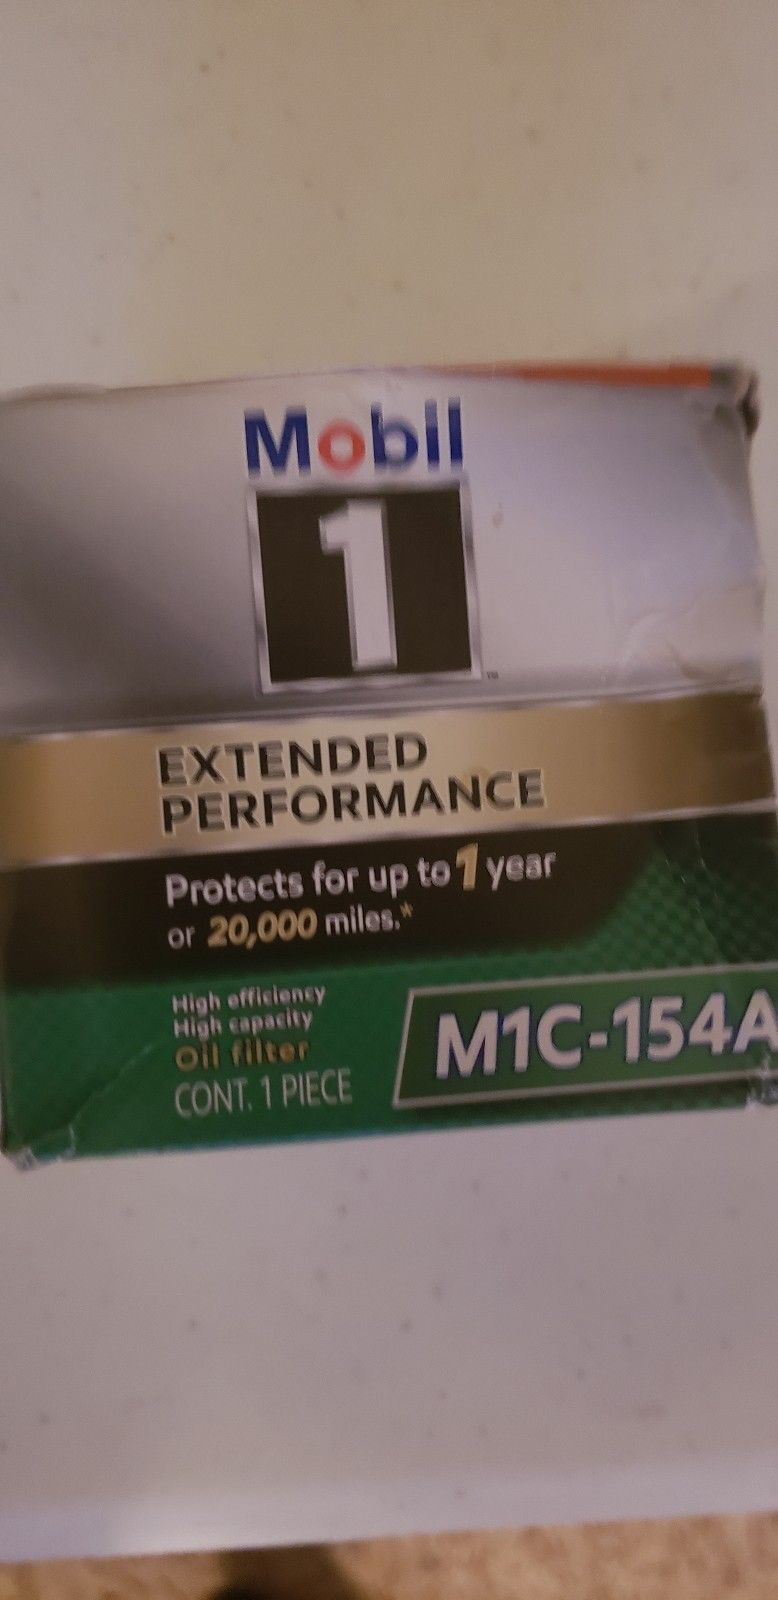 Engine Oil Filter Mobil 1 M1C-154A Does not apply